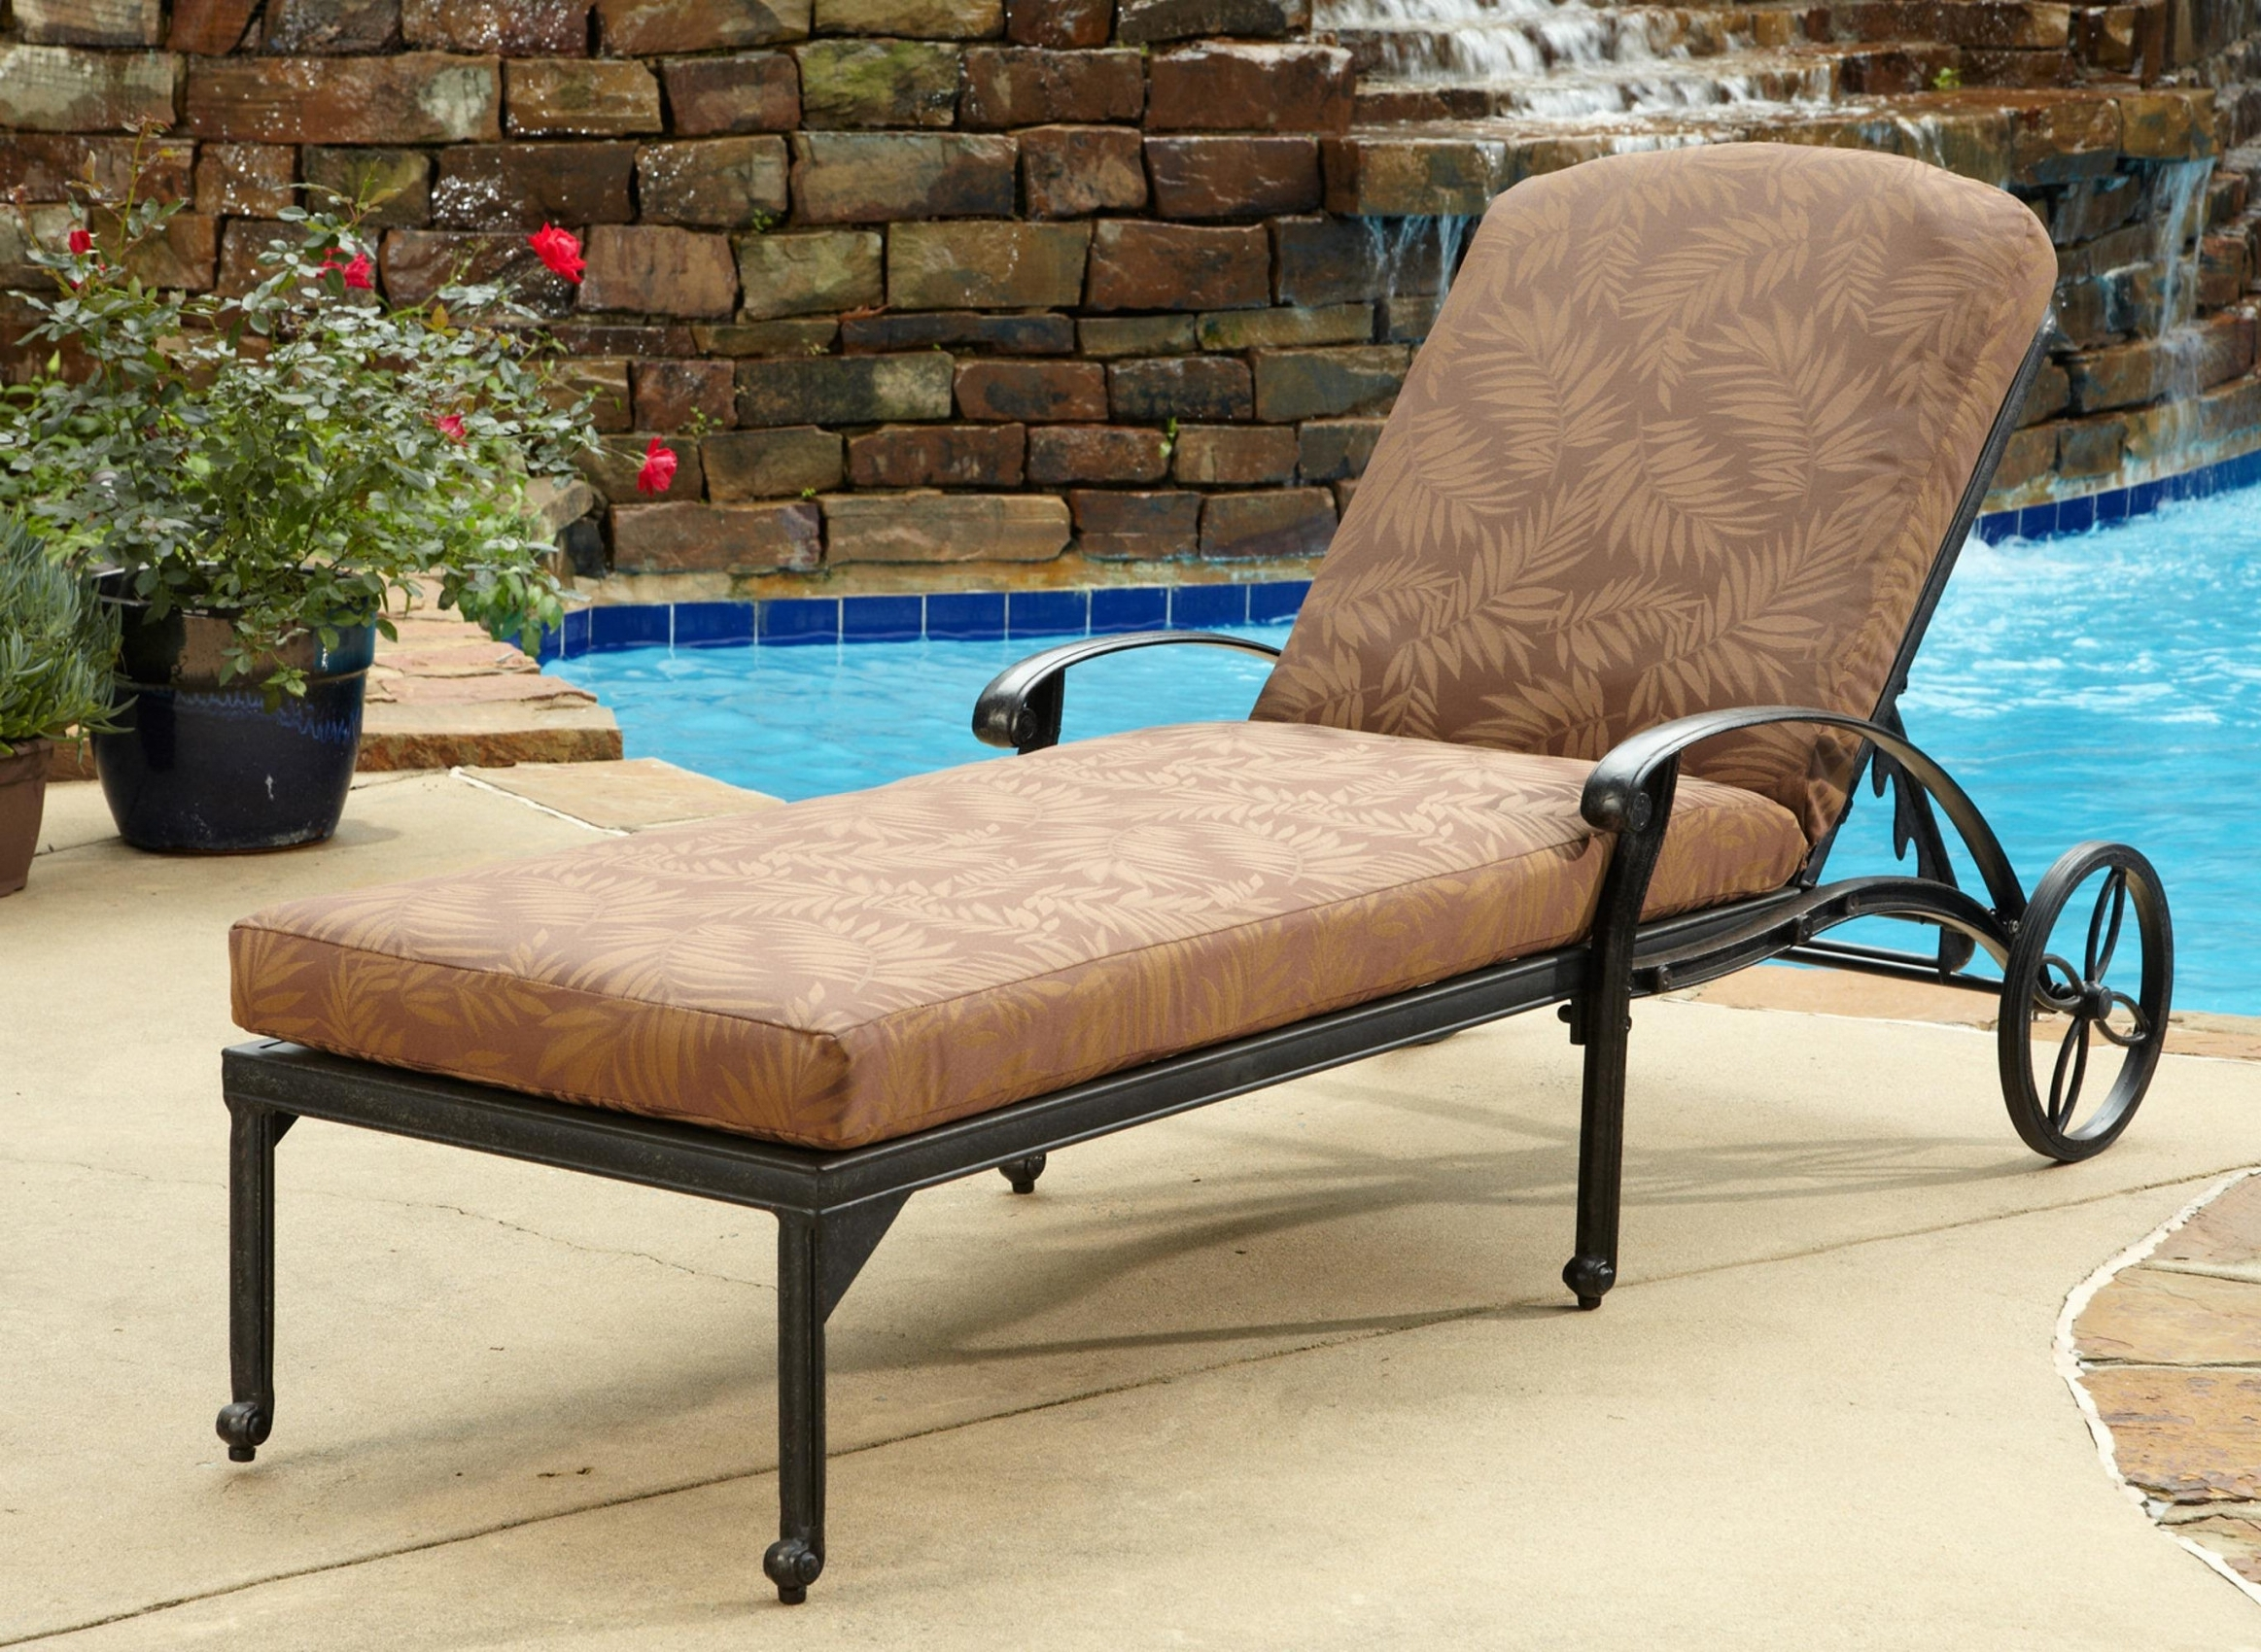 Outdoor Pool Furniture Chaise Lounges In Well Liked Lounge Chair : Outdoor Couch Sling Chaise Lounge Chairs Outdoor (View 9 of 15)